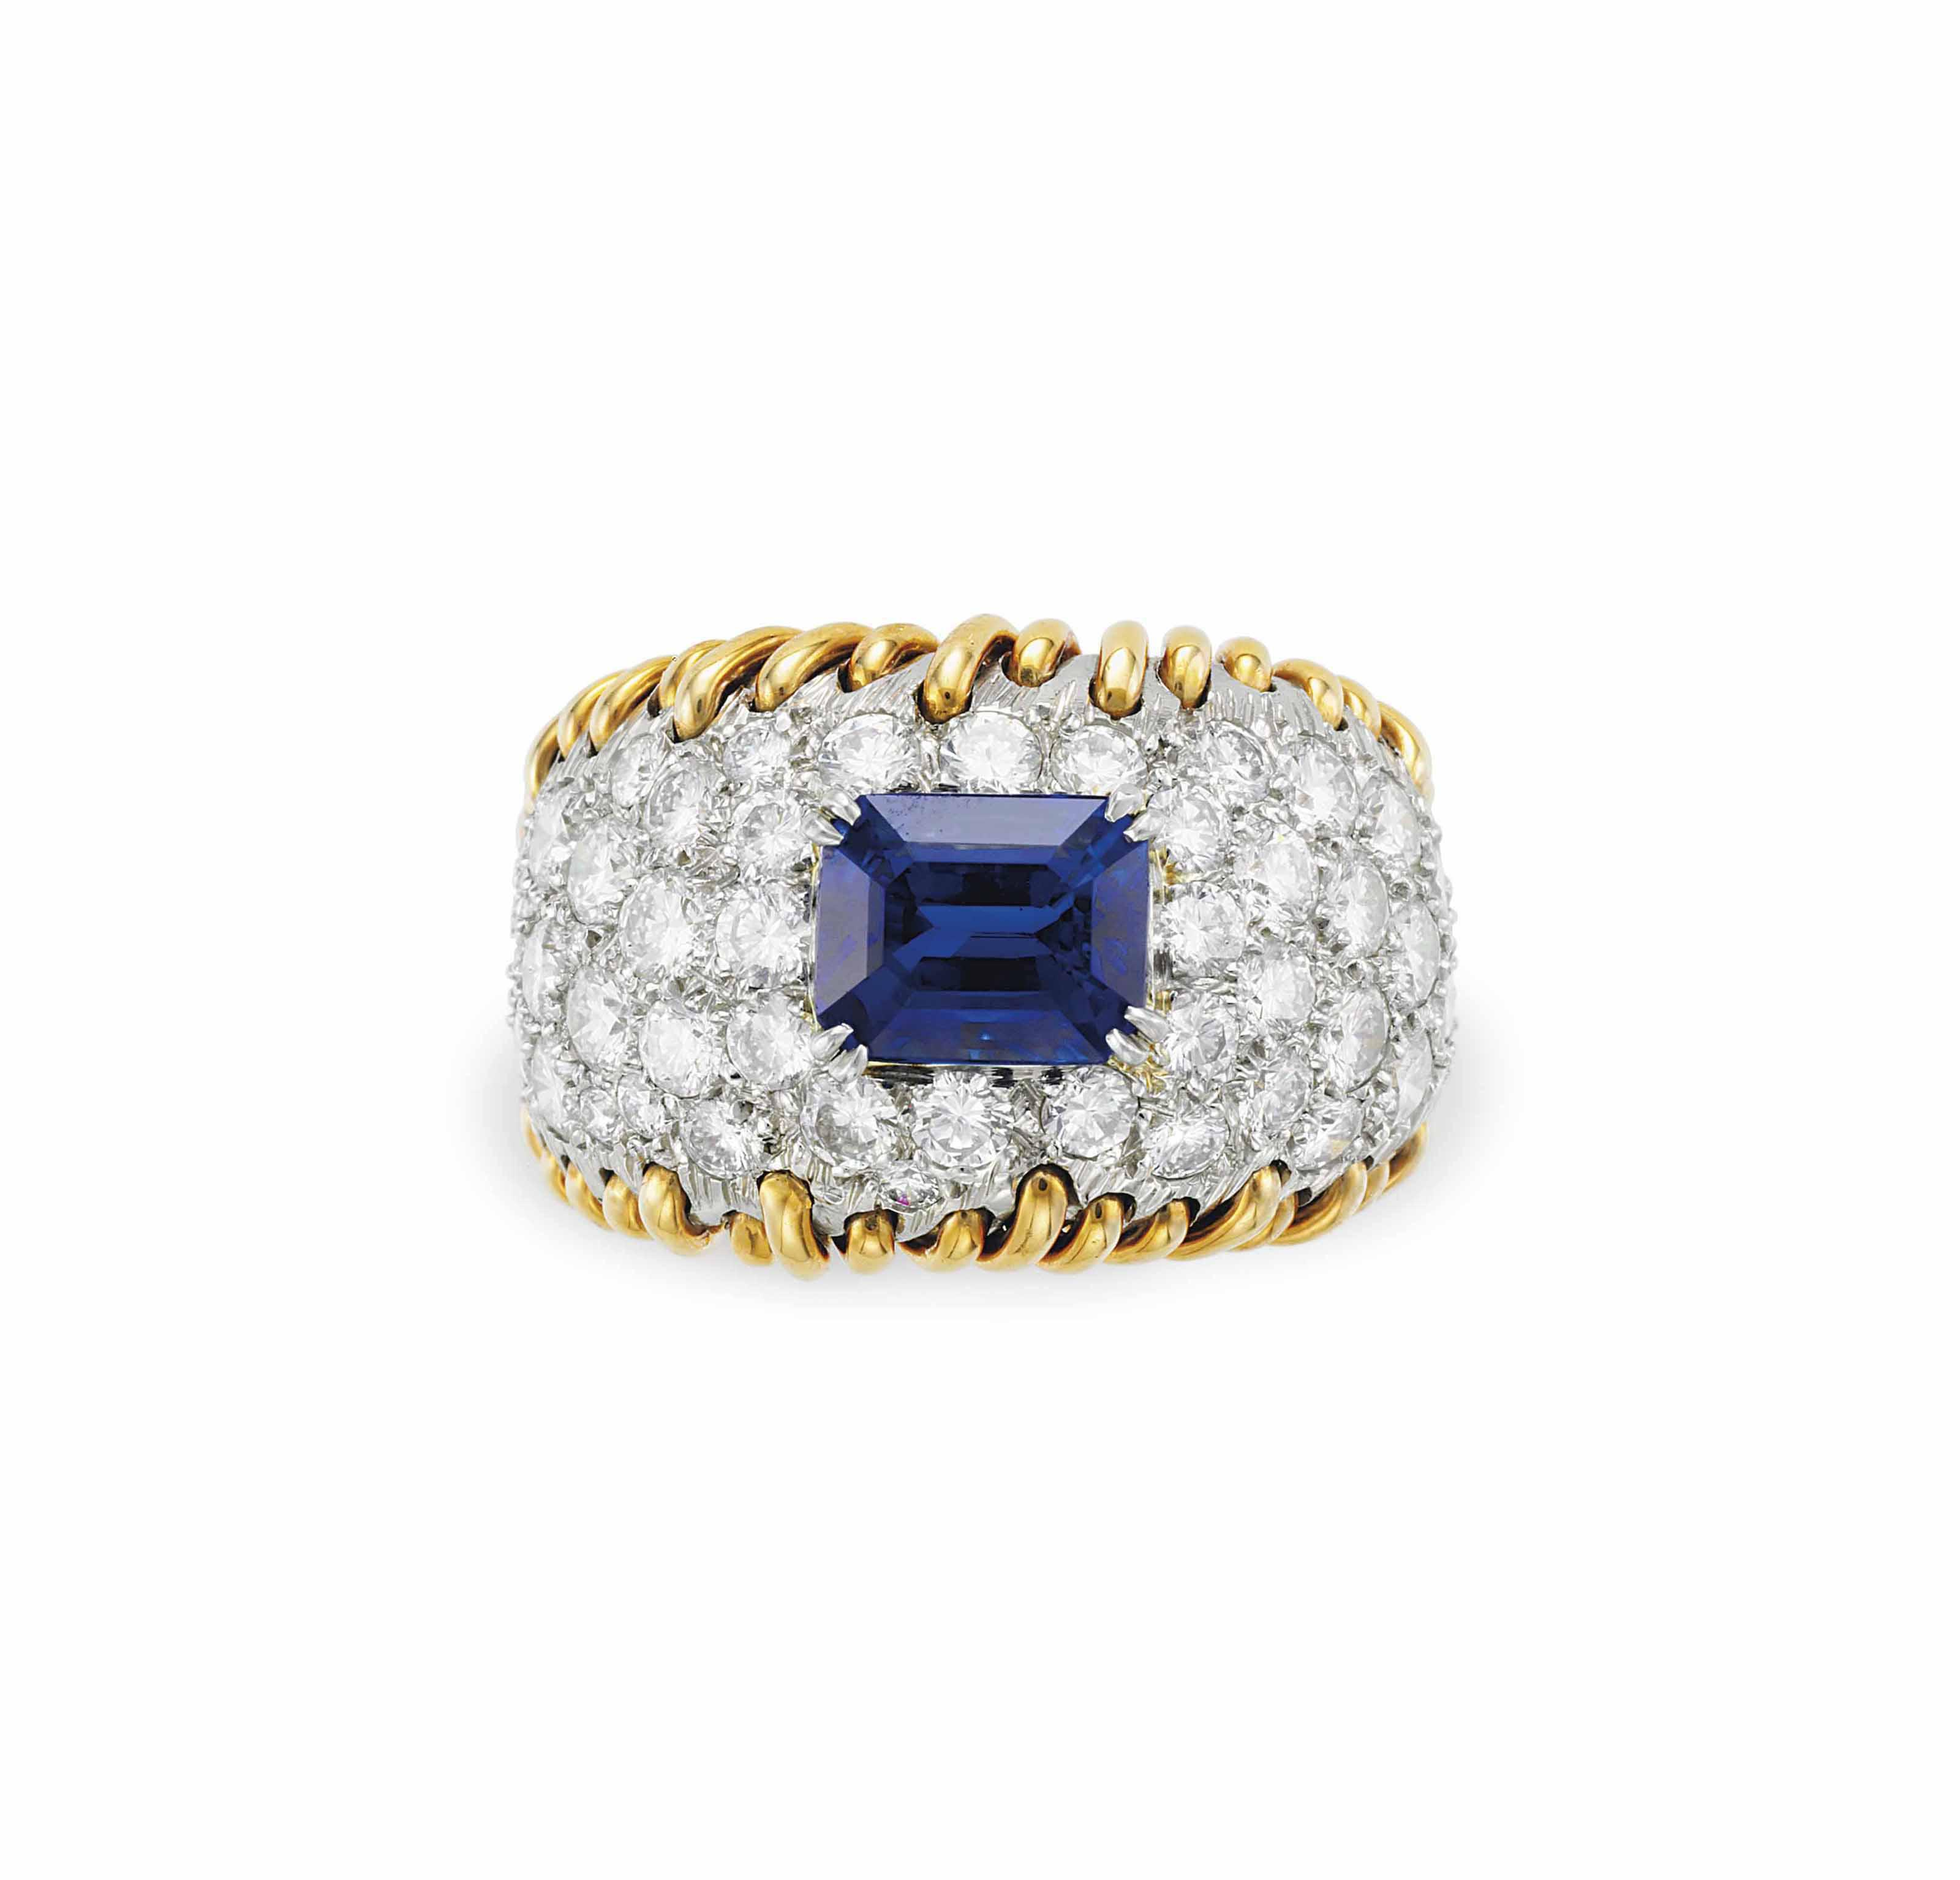 c4be991d9 A SAPPHIRE, DIAMOND AND GOLD 'STITCHES' RING, BY JEAN SCHLUMBERGER, TIFFANY  & CO.